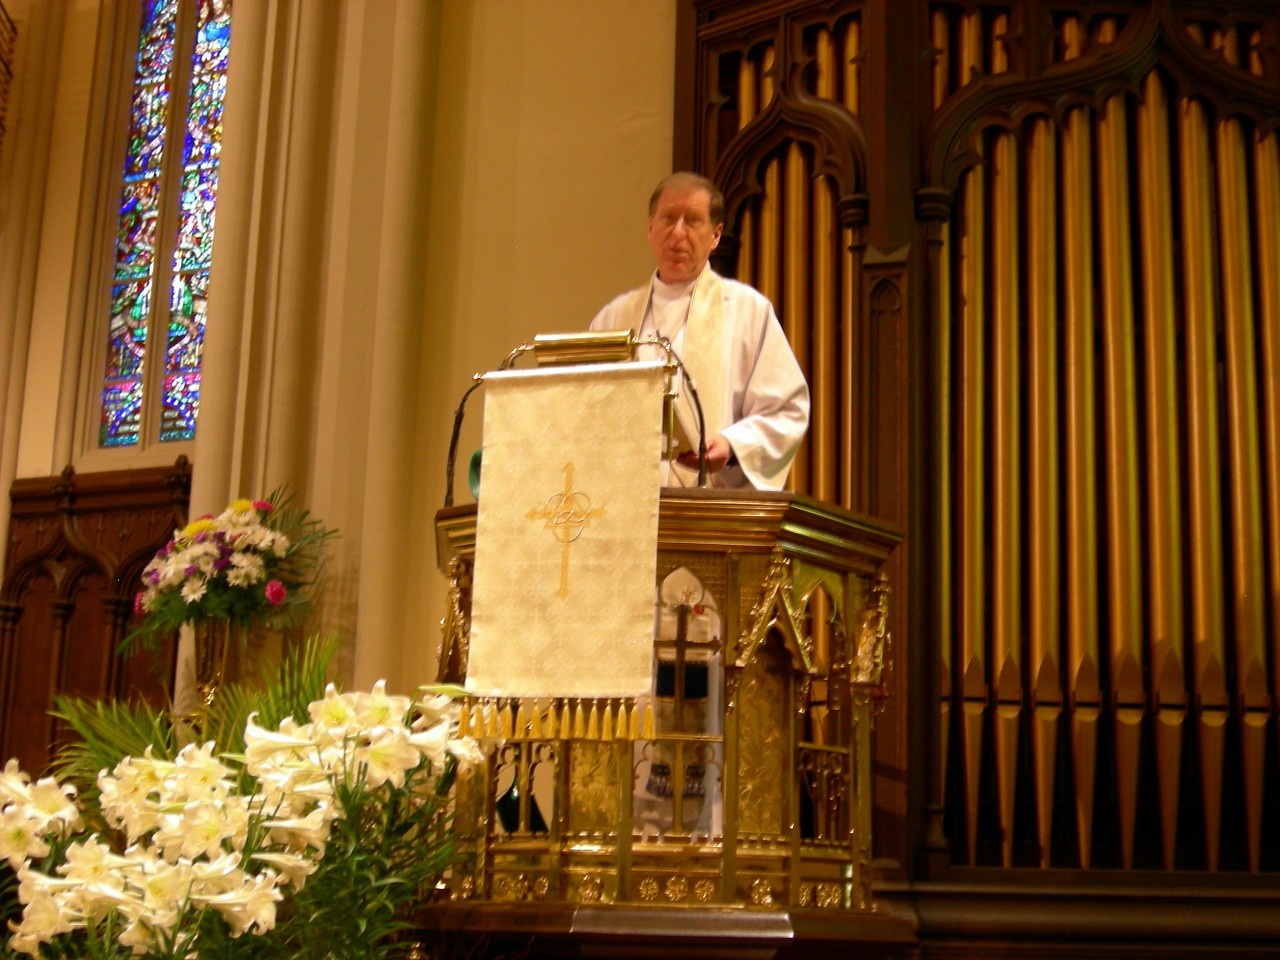 Archbishop Fred Hiltz of the Anglican Church of Canada preached at the May 1 worship celebration in Bufflo, N.Y.